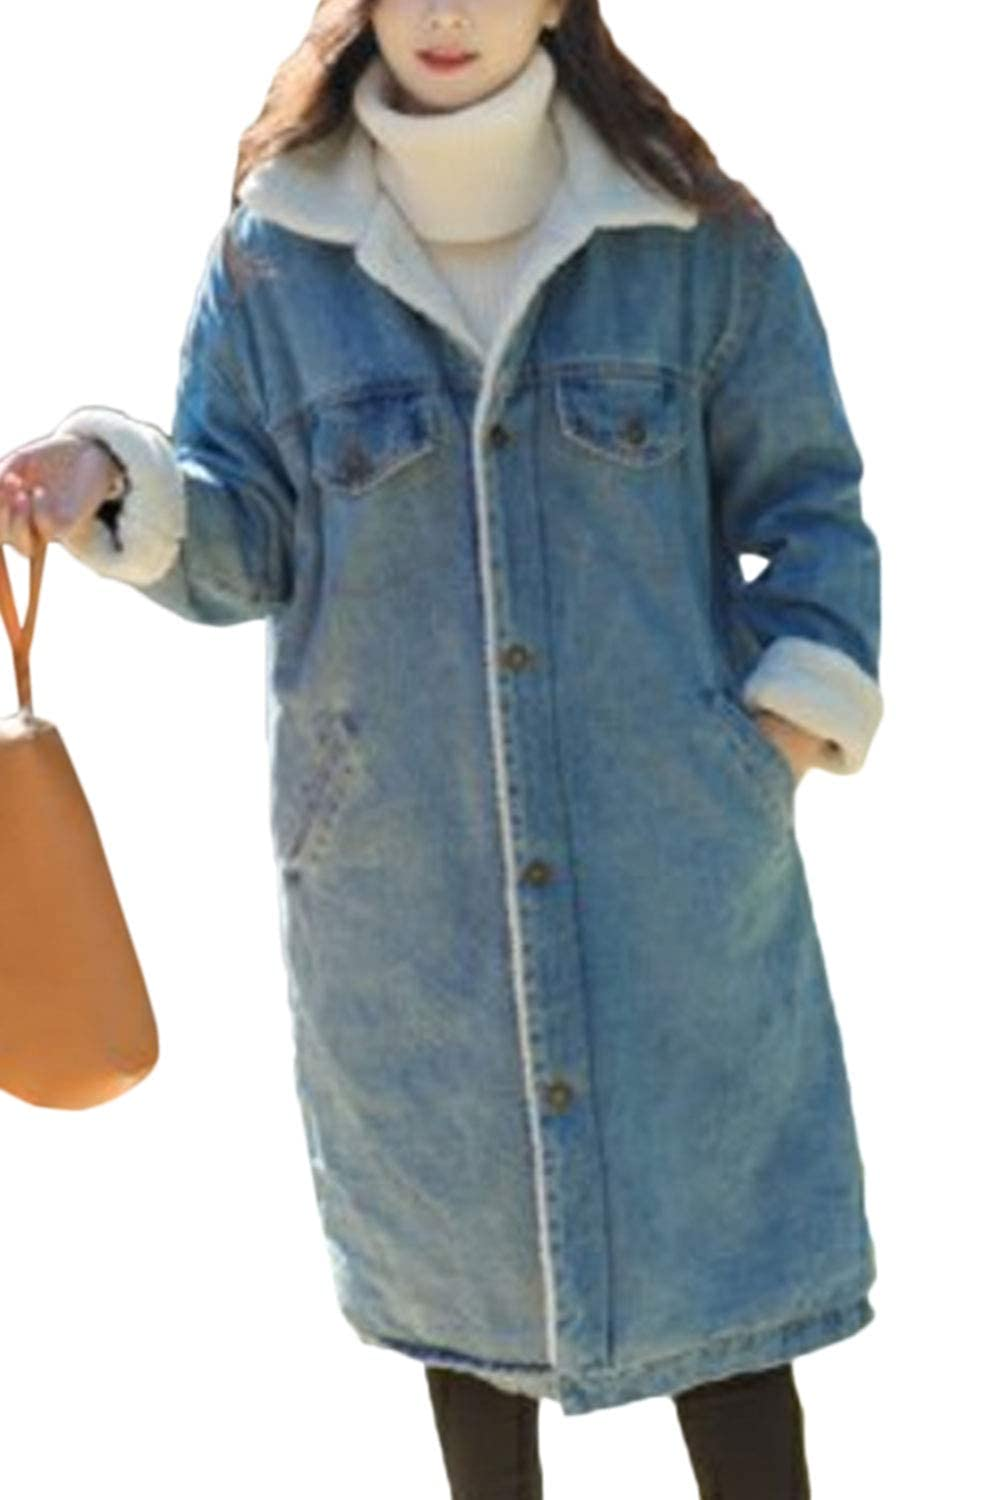 Zilcremo Womens Denim Trenchcoat Thick Fleece Lined Lapel Button Down Jacket